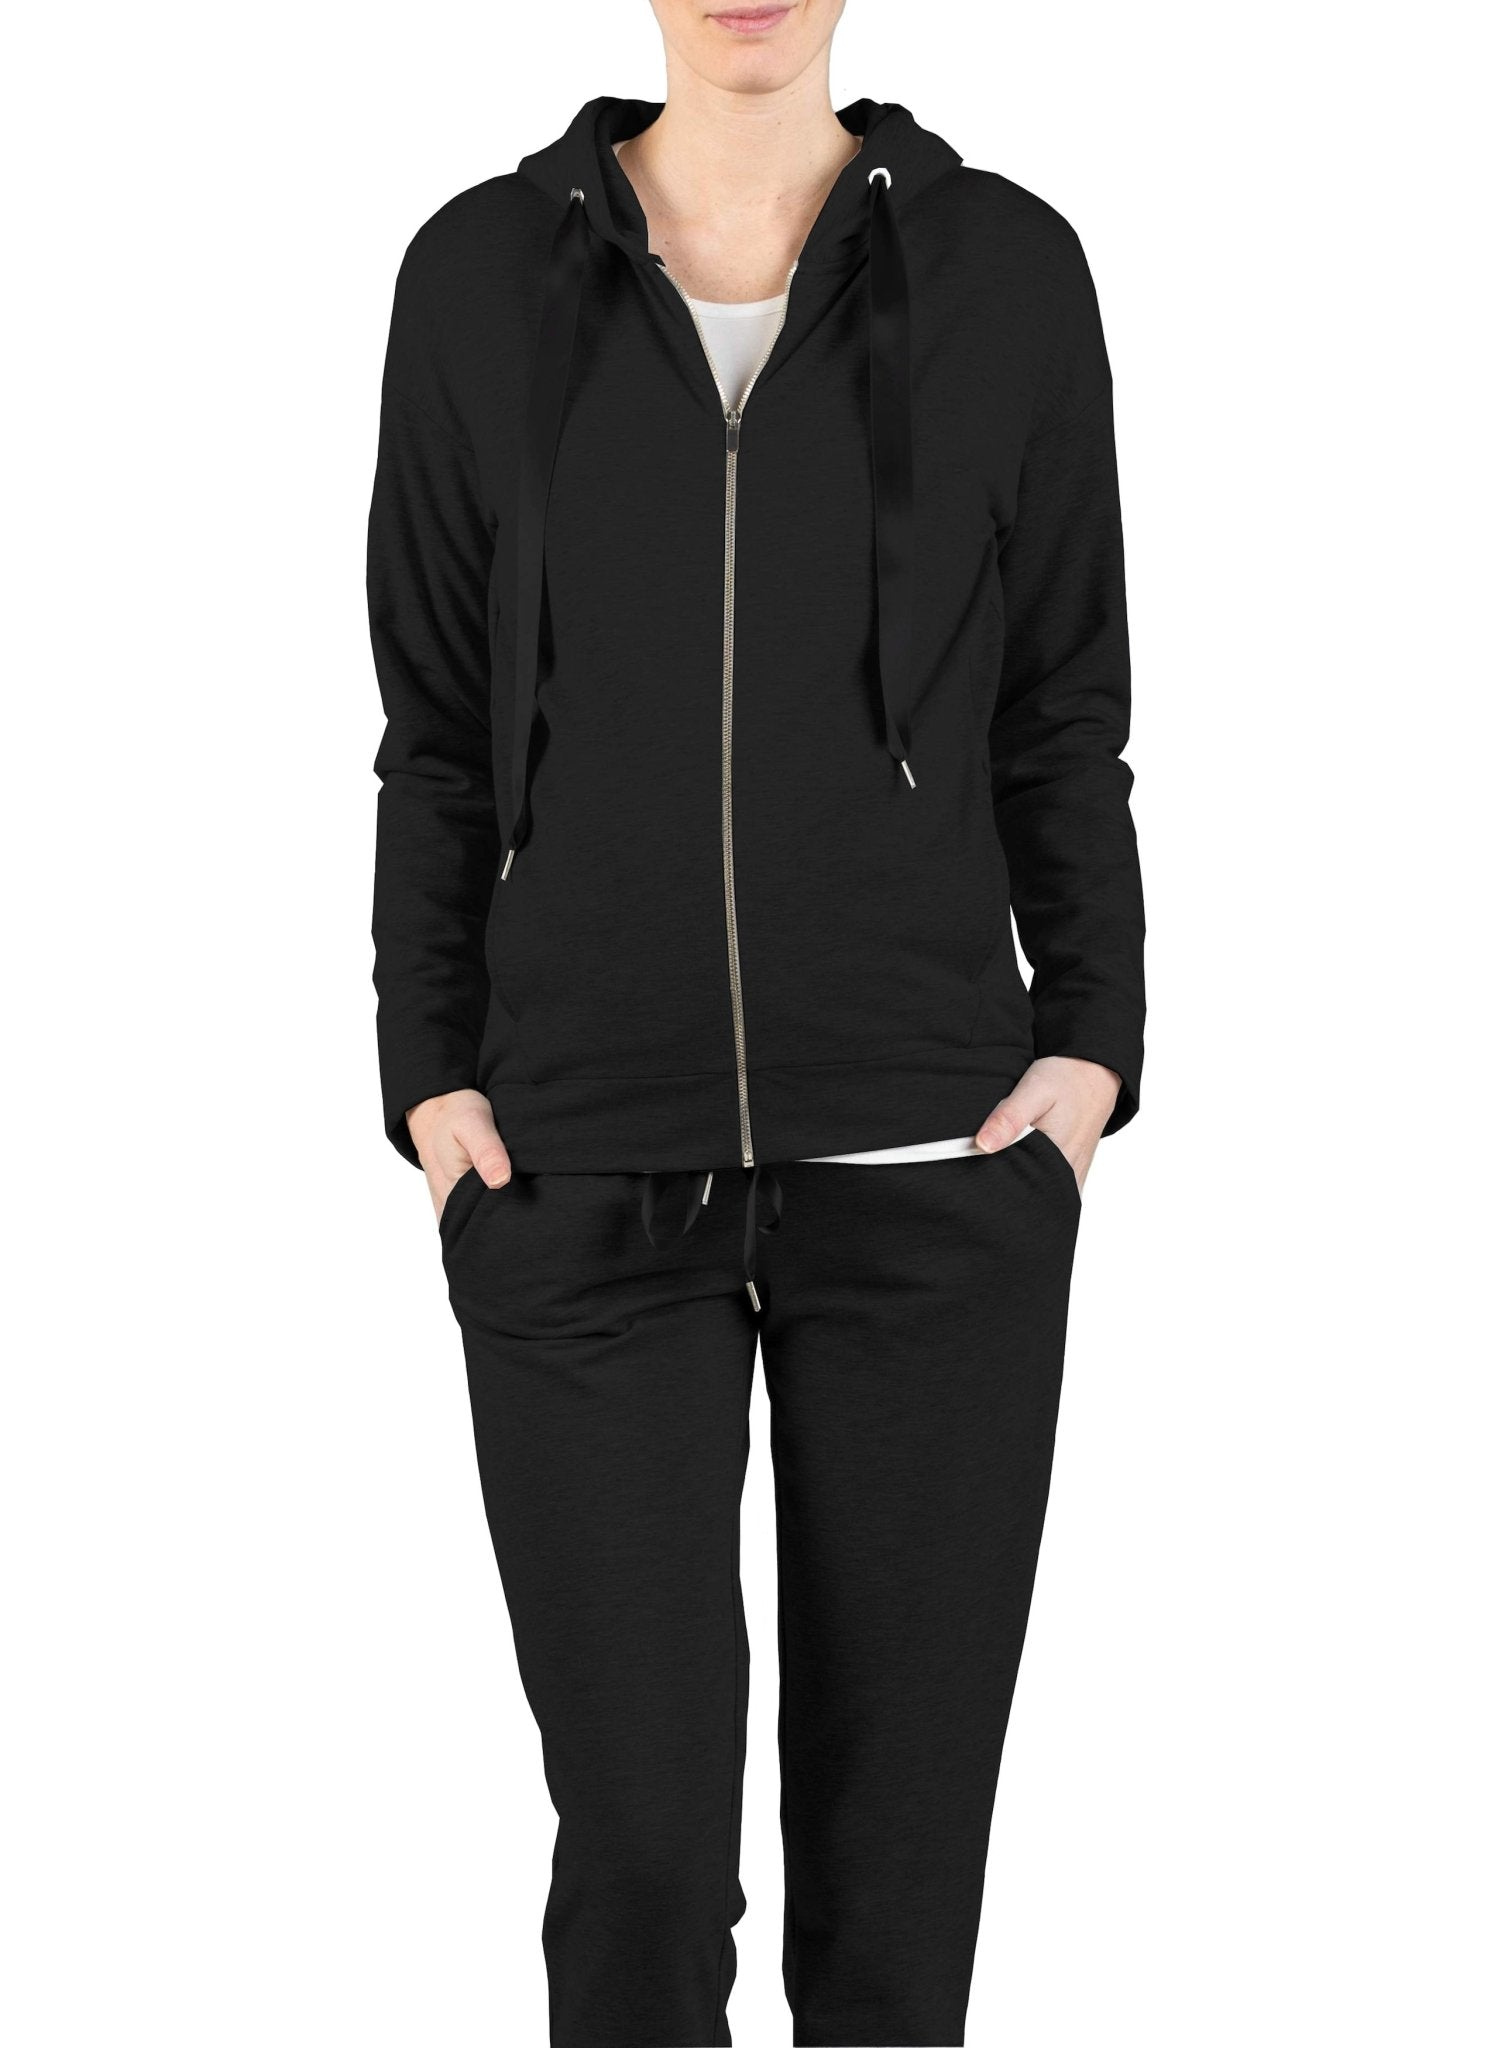 Maternity Tracksuit (2 Piece Set) - Black - Mums and Bumps